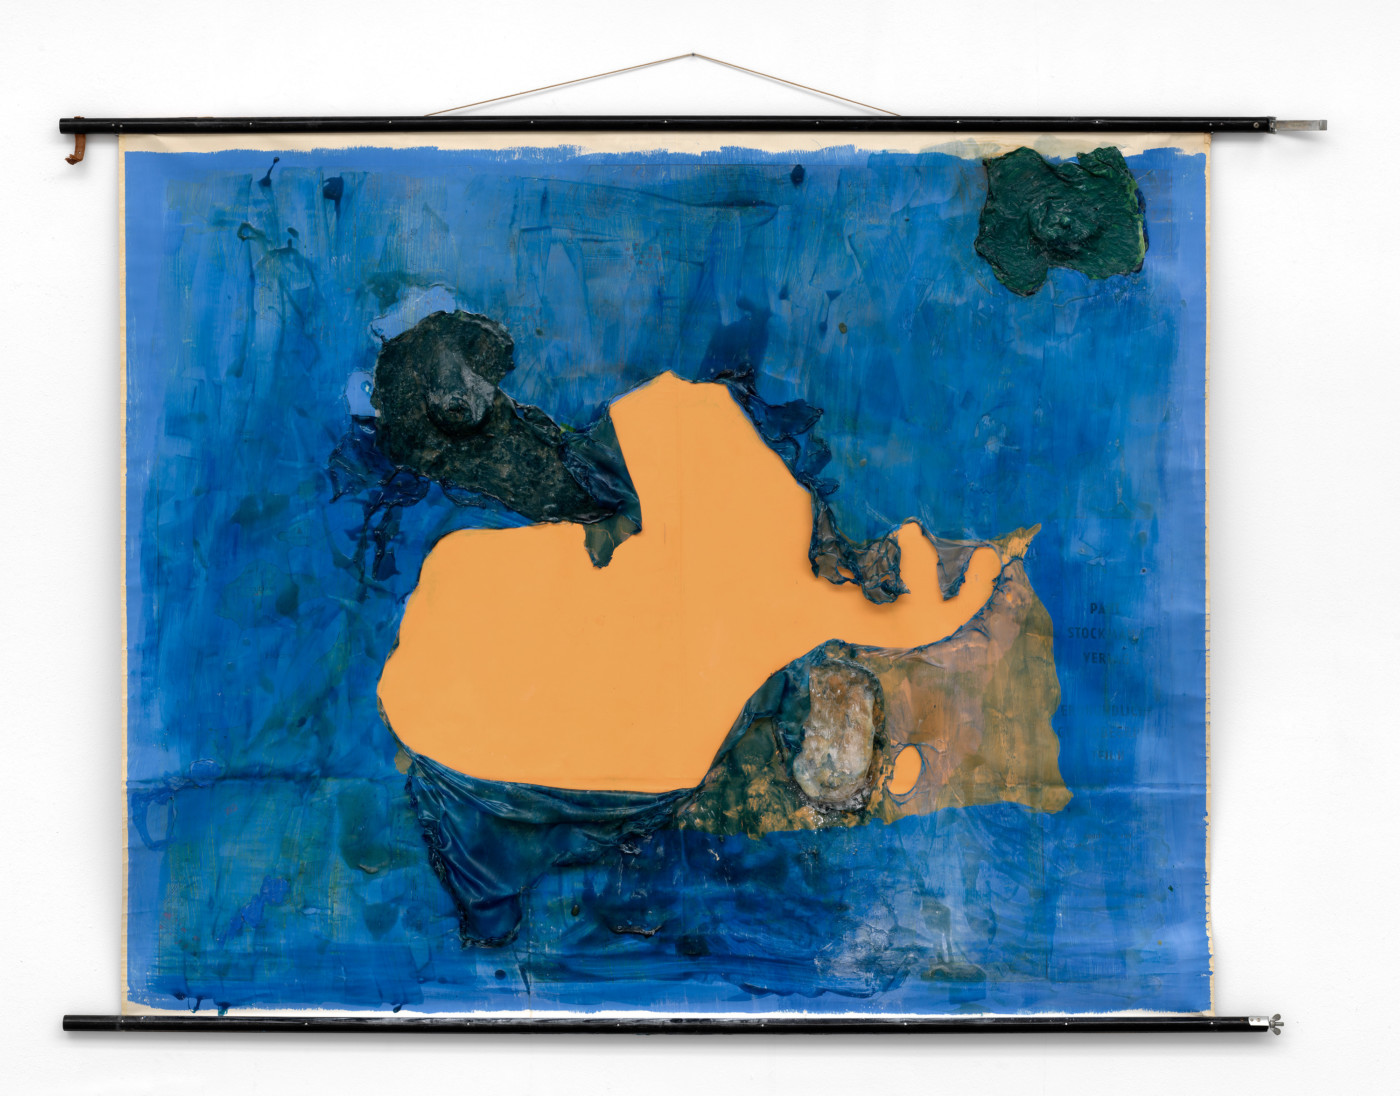 OLGA BALEMA  Failure is the mother of success , 2016 Map, latex, pigment, acrylic paint 135 × 170 × 5 cm / 53.1 × 66.9 × 2 in - High Art Gallery Paris